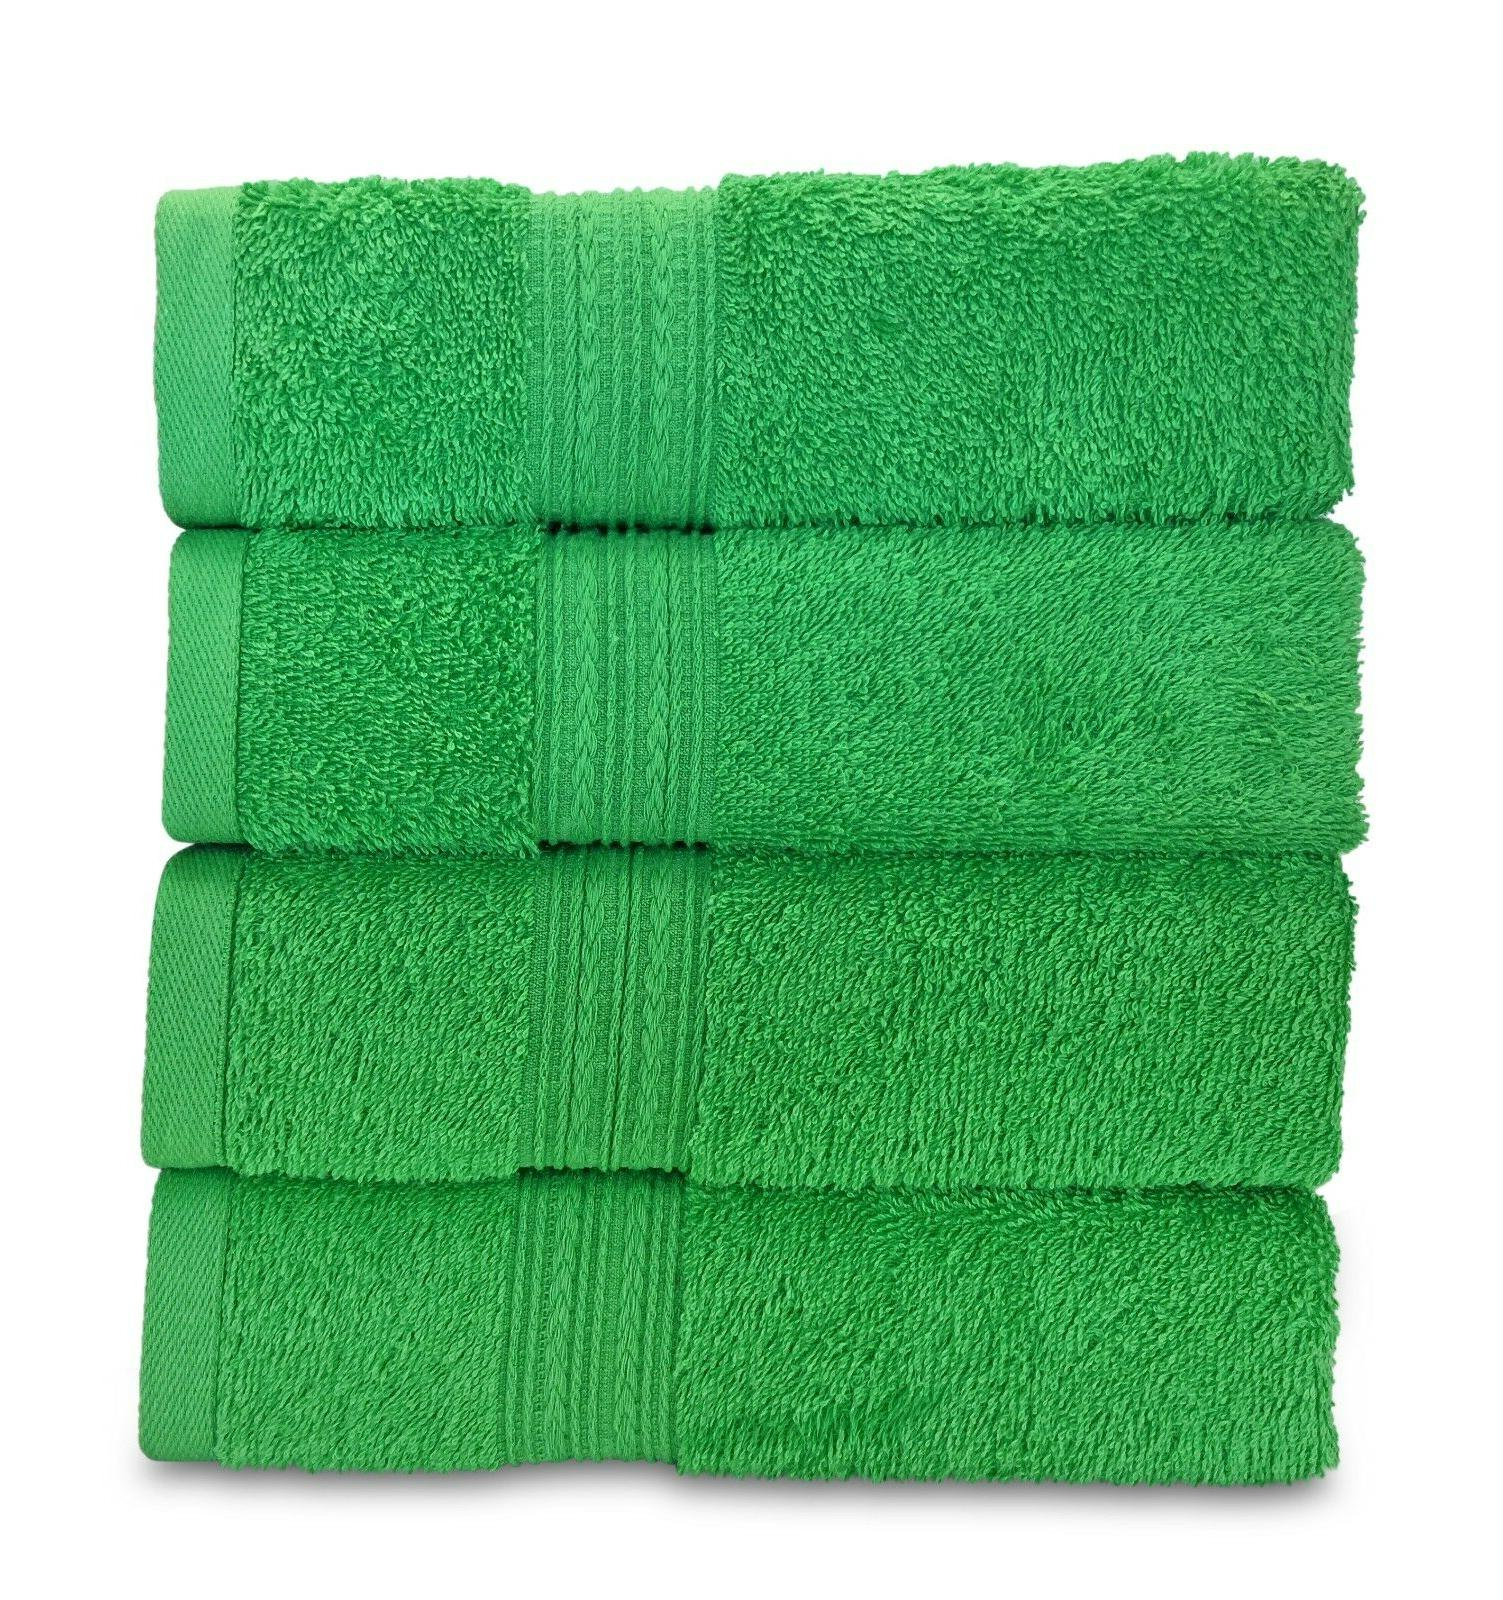 Goza Towels Hand Gym, Towels -16x28 4 Pack